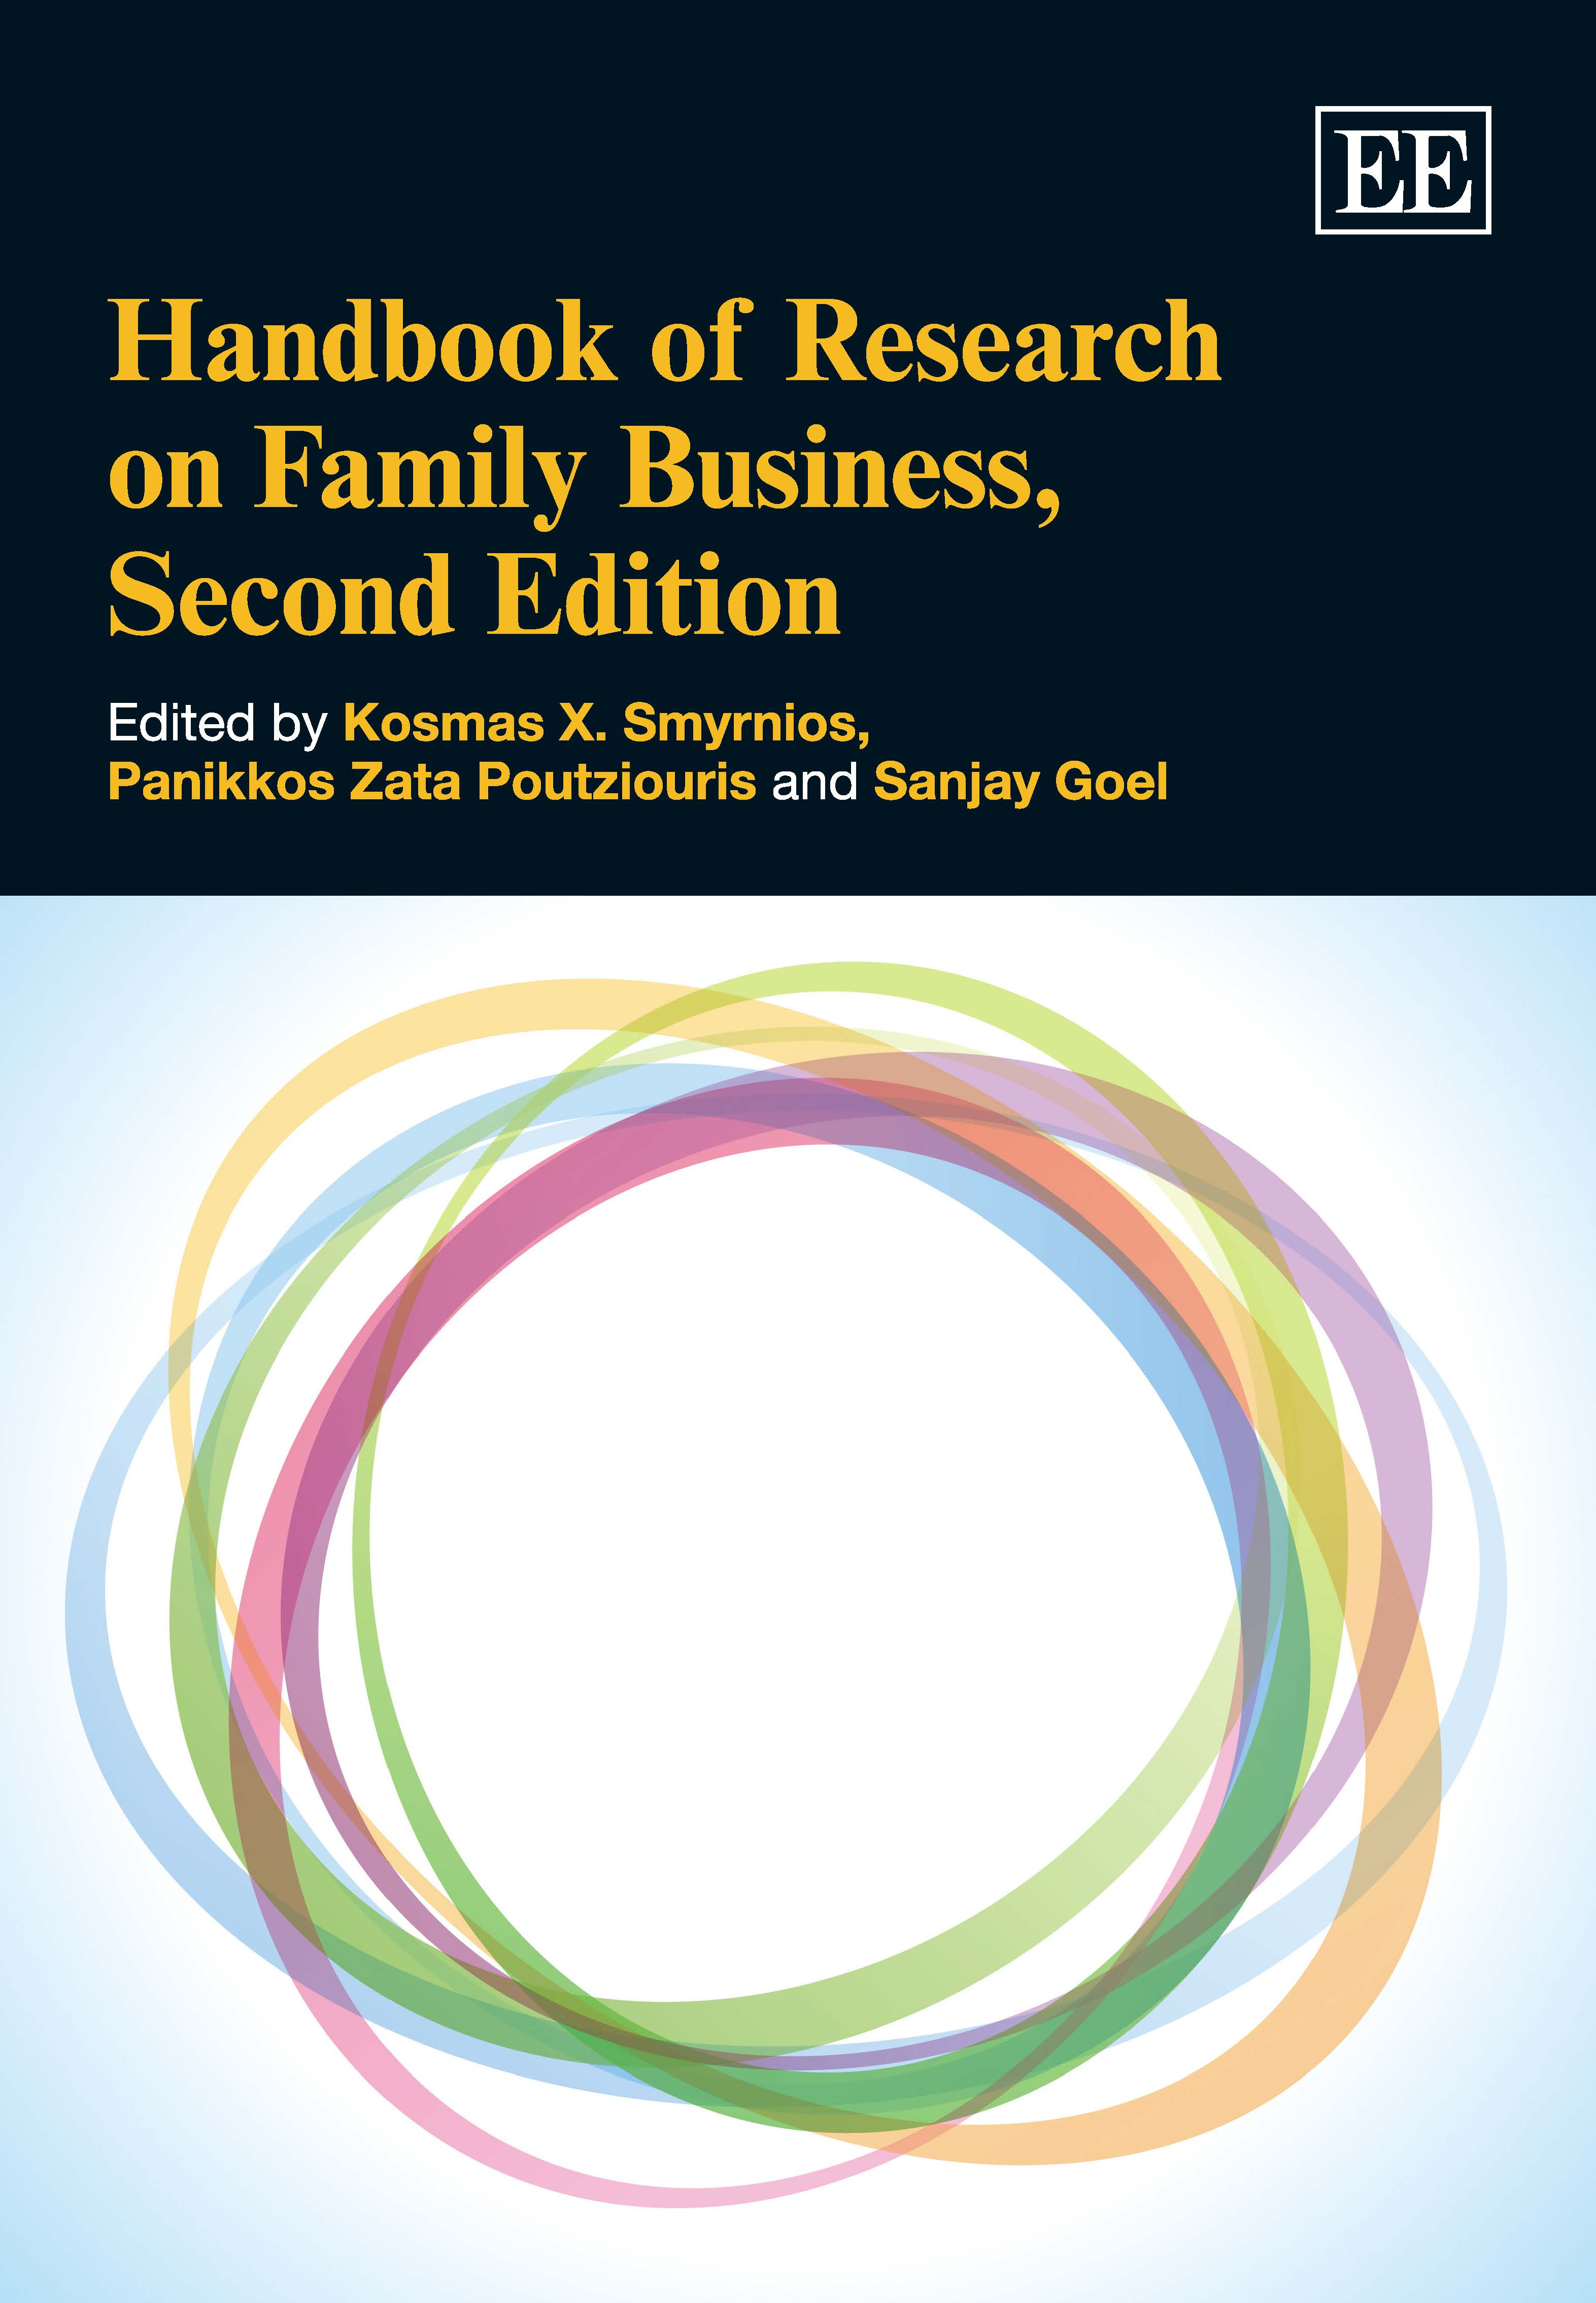 Download Ebook Handbook of Research on Family Business (2nd ed.) by Kosmas X. Smyrnios Pdf